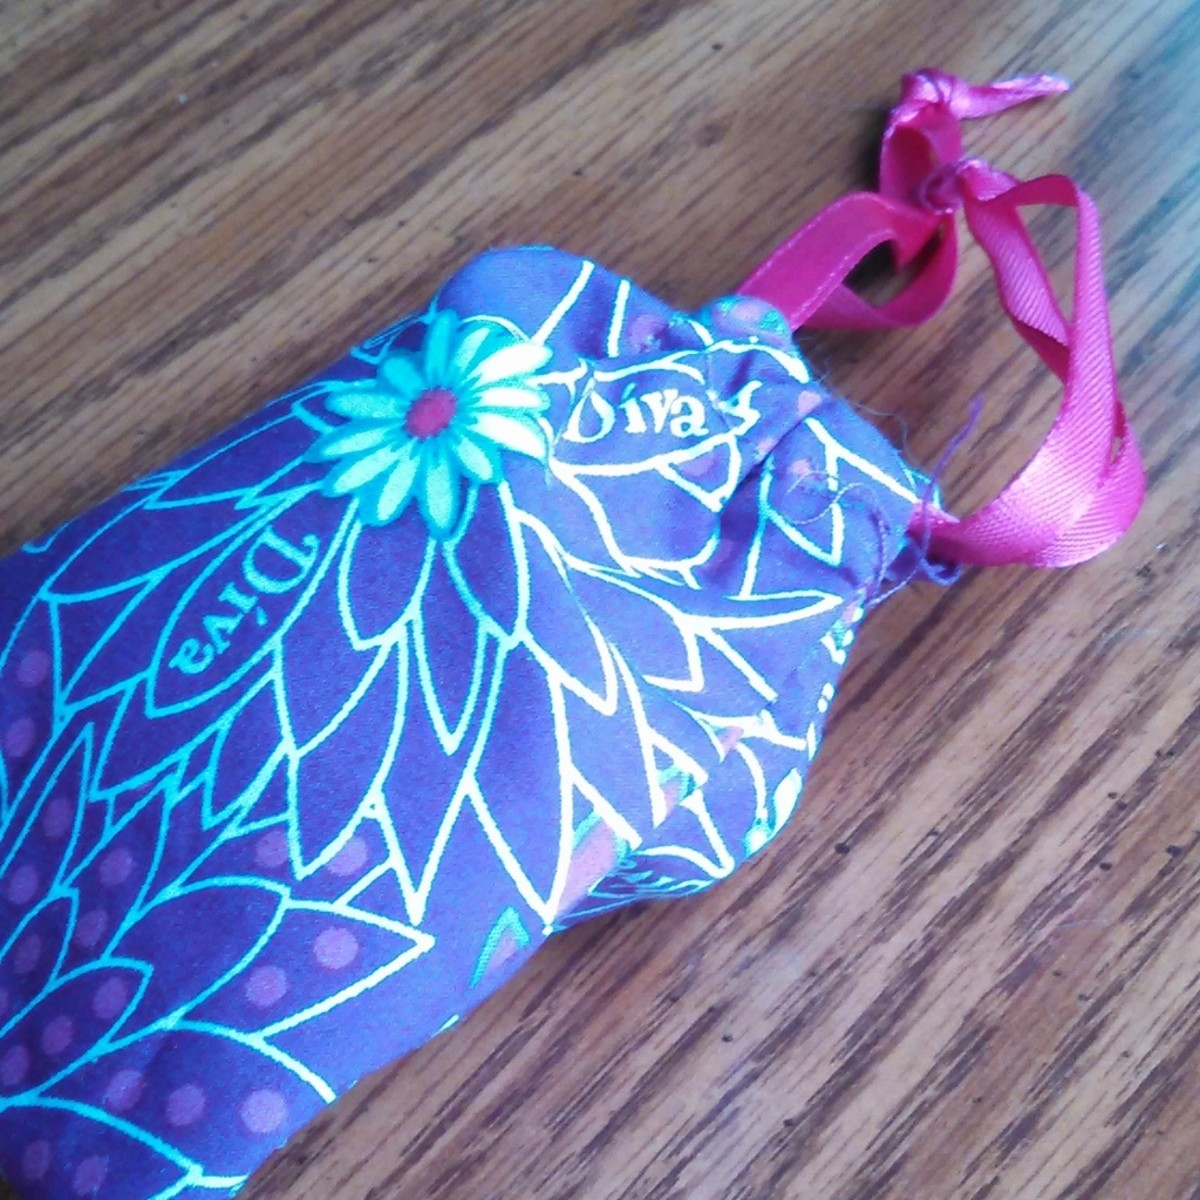 My menstrual cup came with a discreet bag to protect it between uses and make it easy to take along when I travel.